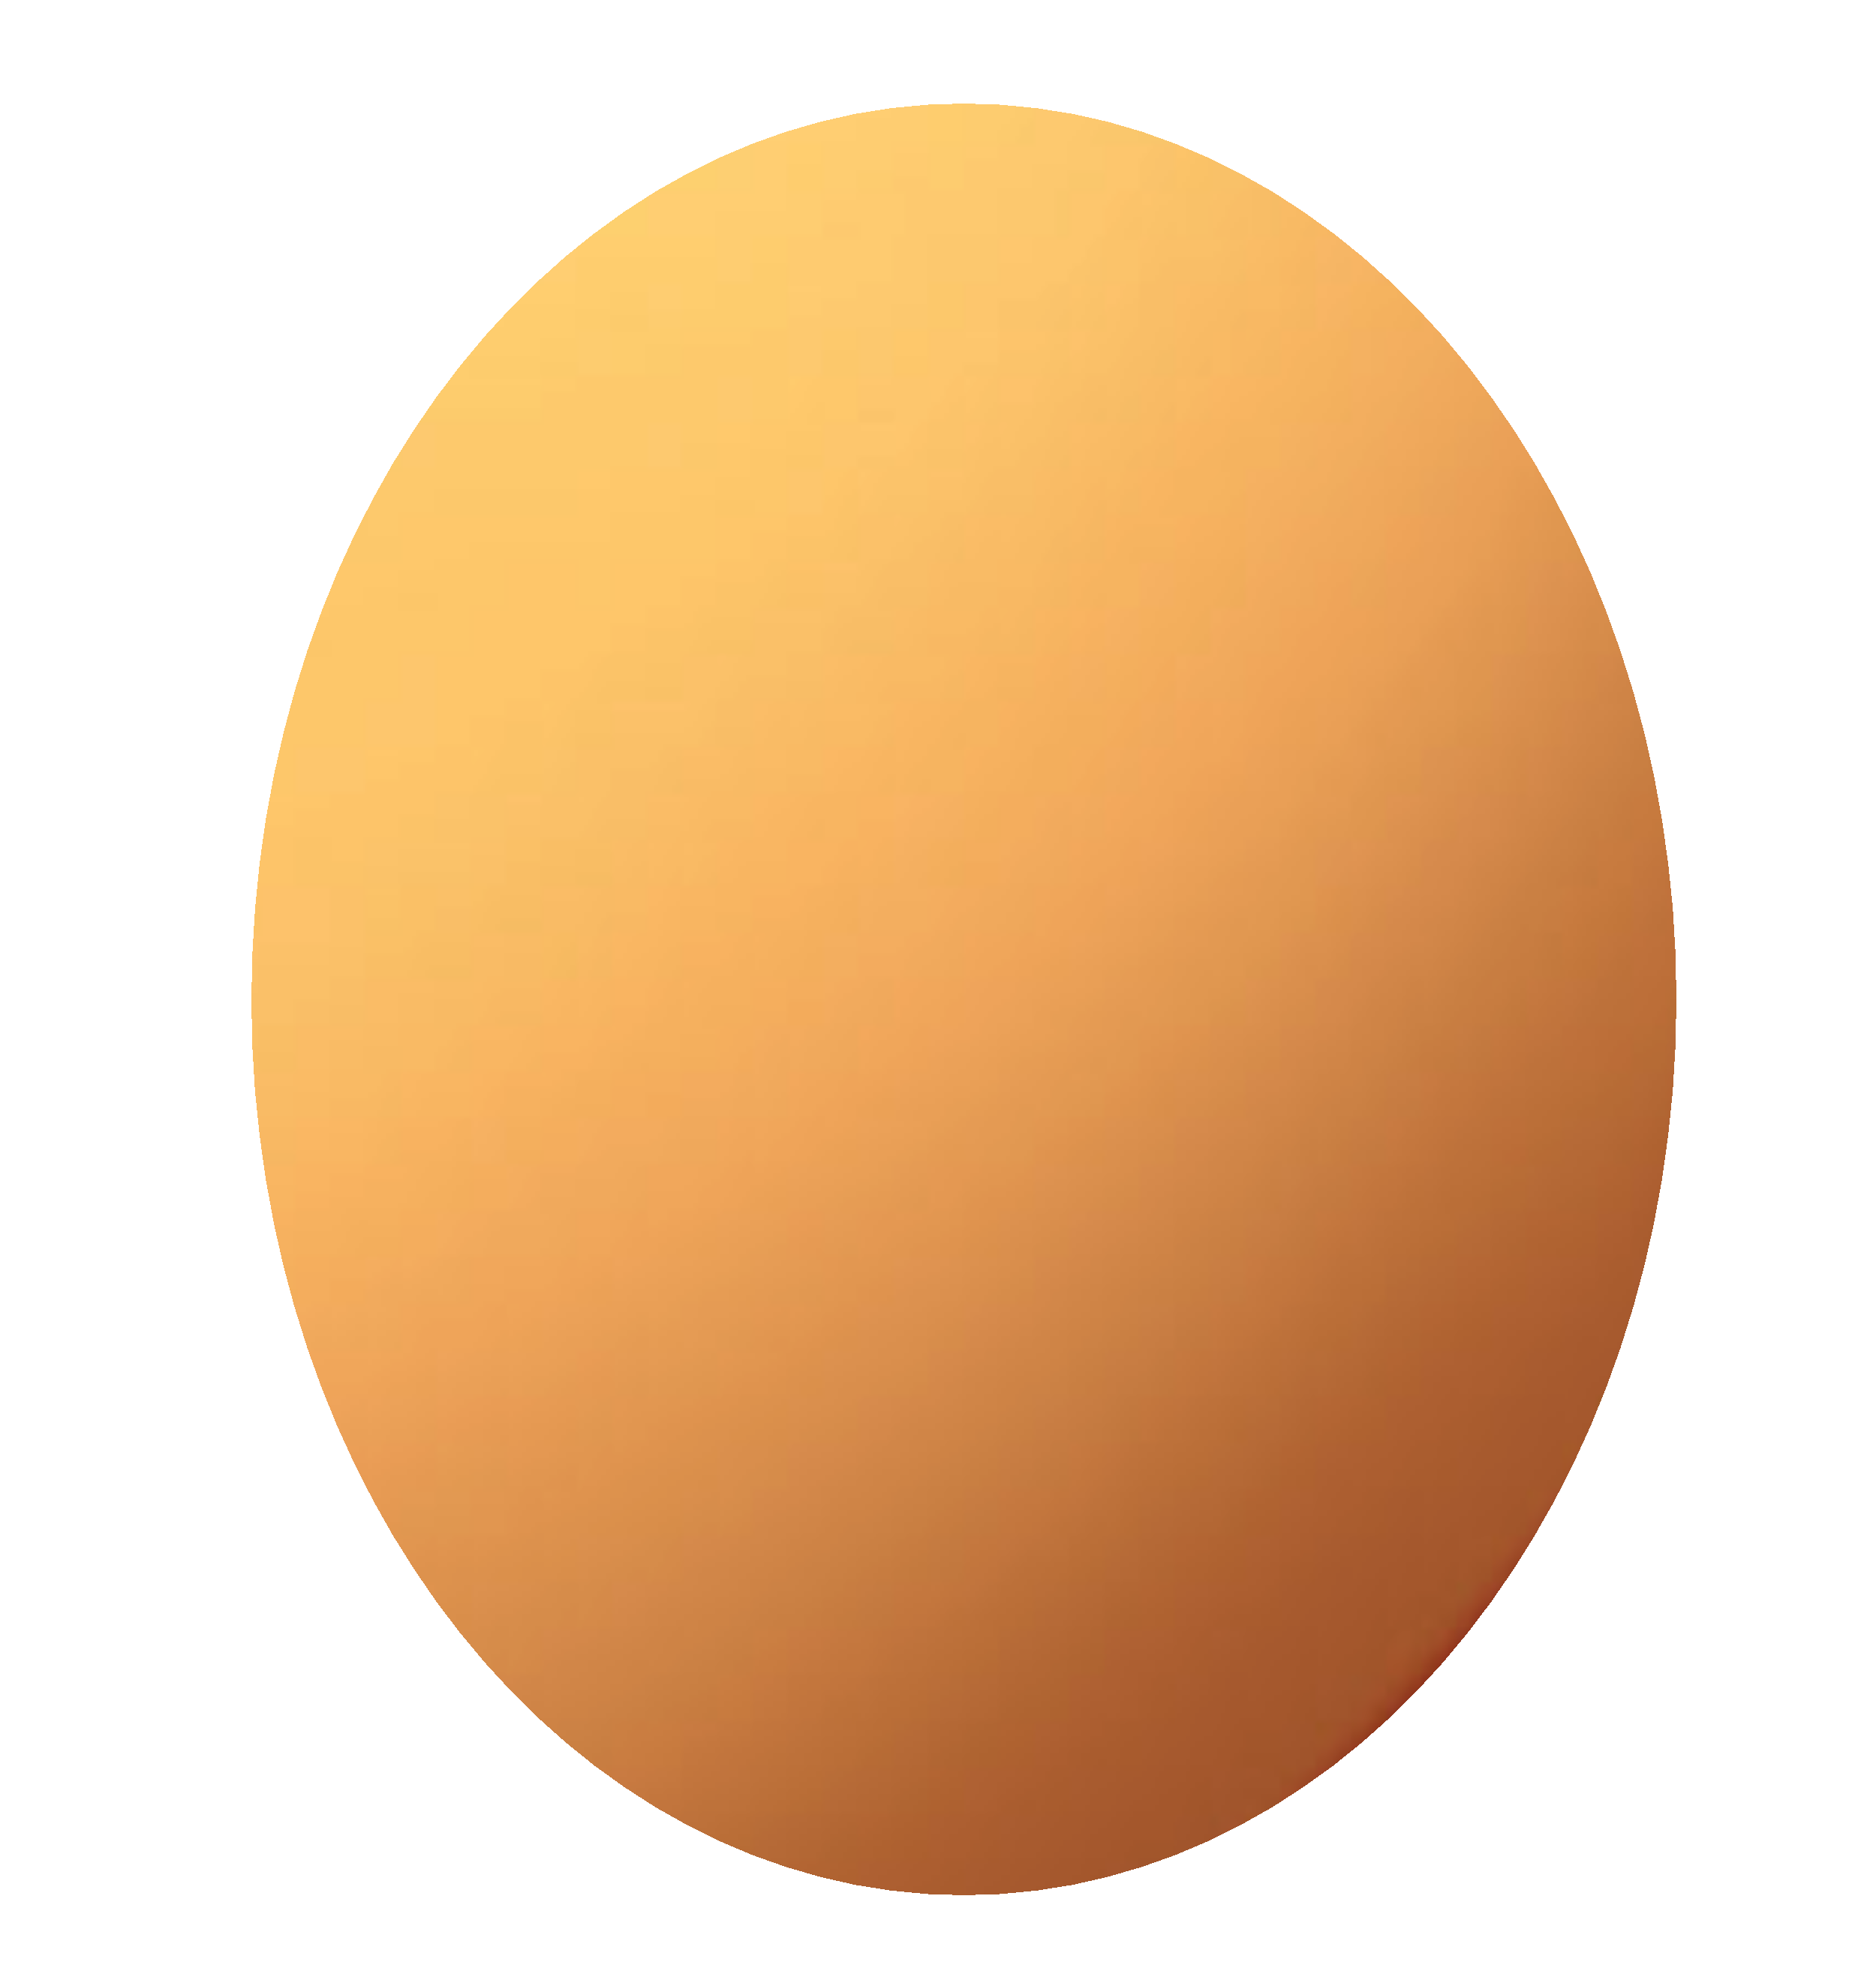 Egg cartoon png. Eggs image free download